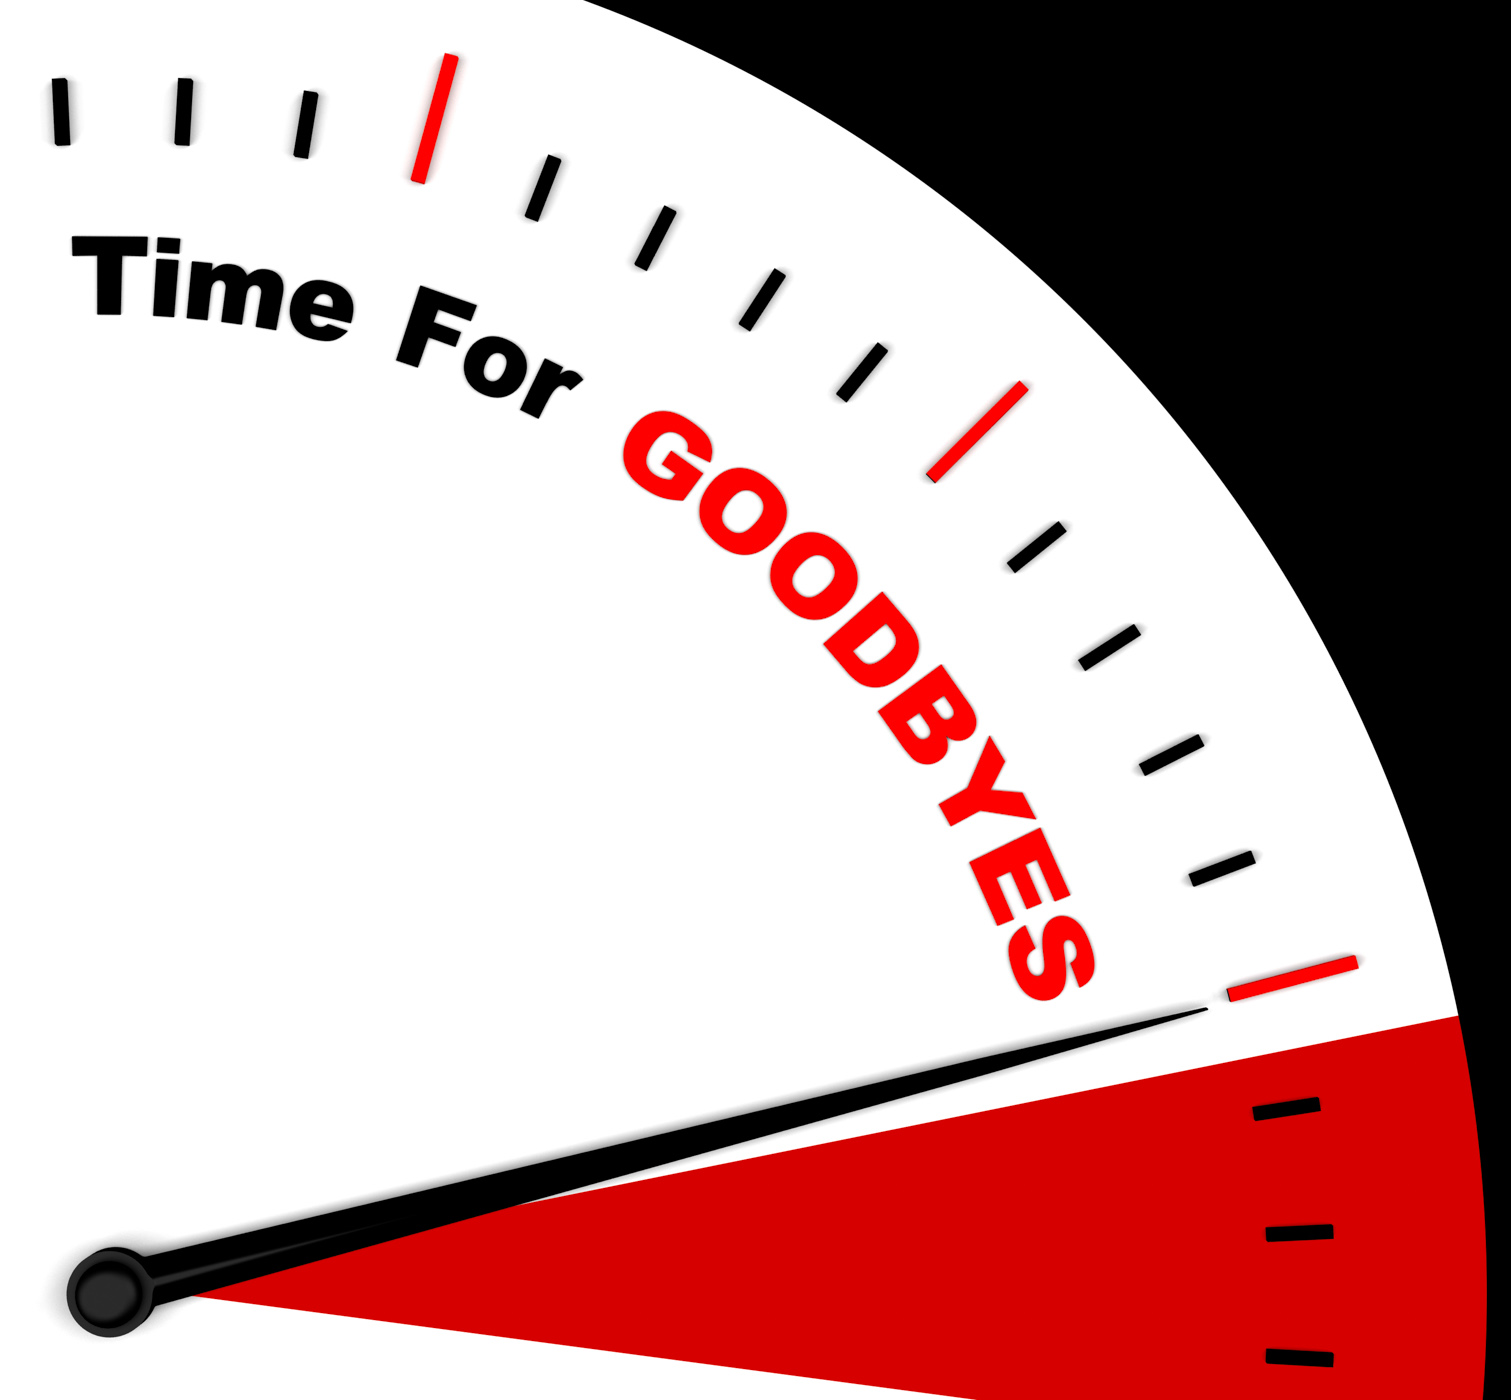 Time for goodbyes message shows farewell or bye photo